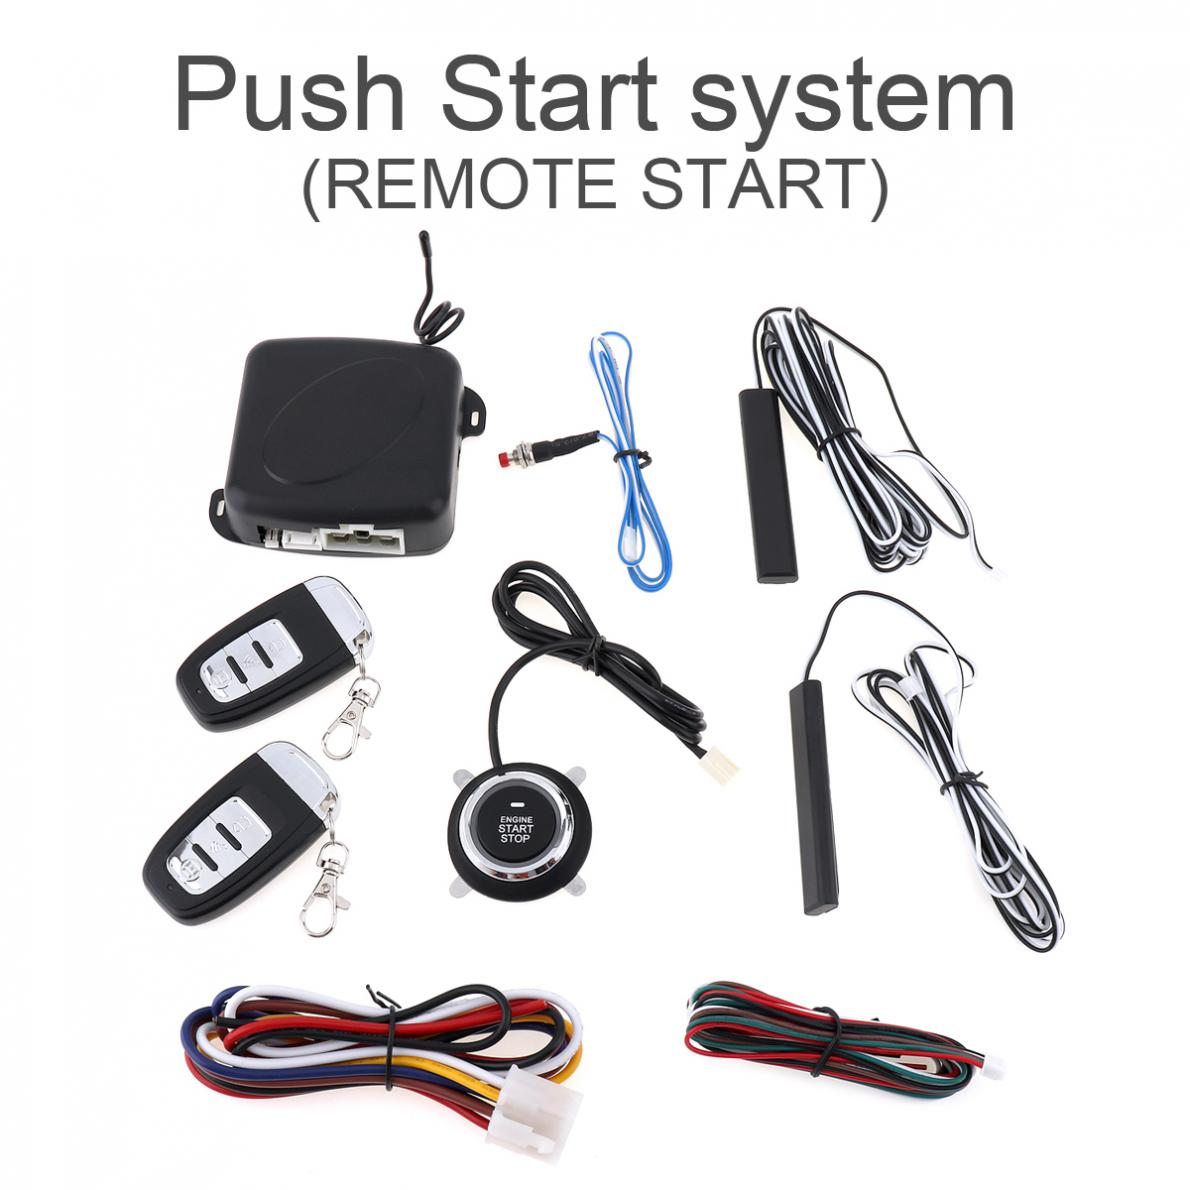 Smart Auto Car Alarm Engine Starline Push Button Start Stop RFID Lock Ignition Switch Keyless Entry System Starter Anti-theft easyguard pke car alarm system remote engine start stop shock sensor push button start stop window rise up automatically